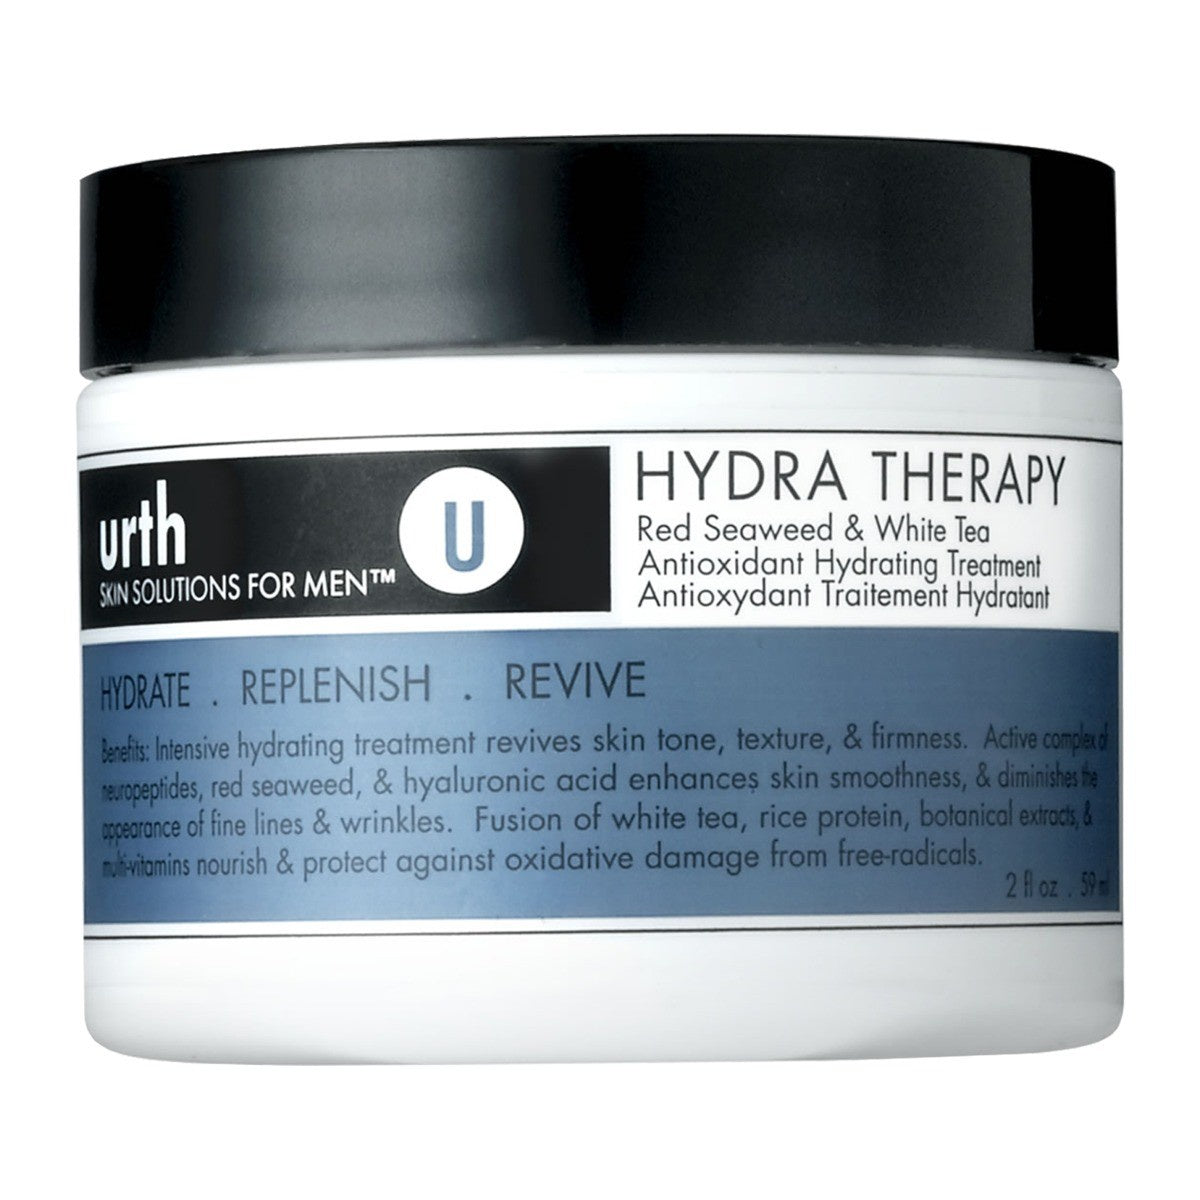 Urth Hydra Therapy Antioxidant Treatment - 59ml